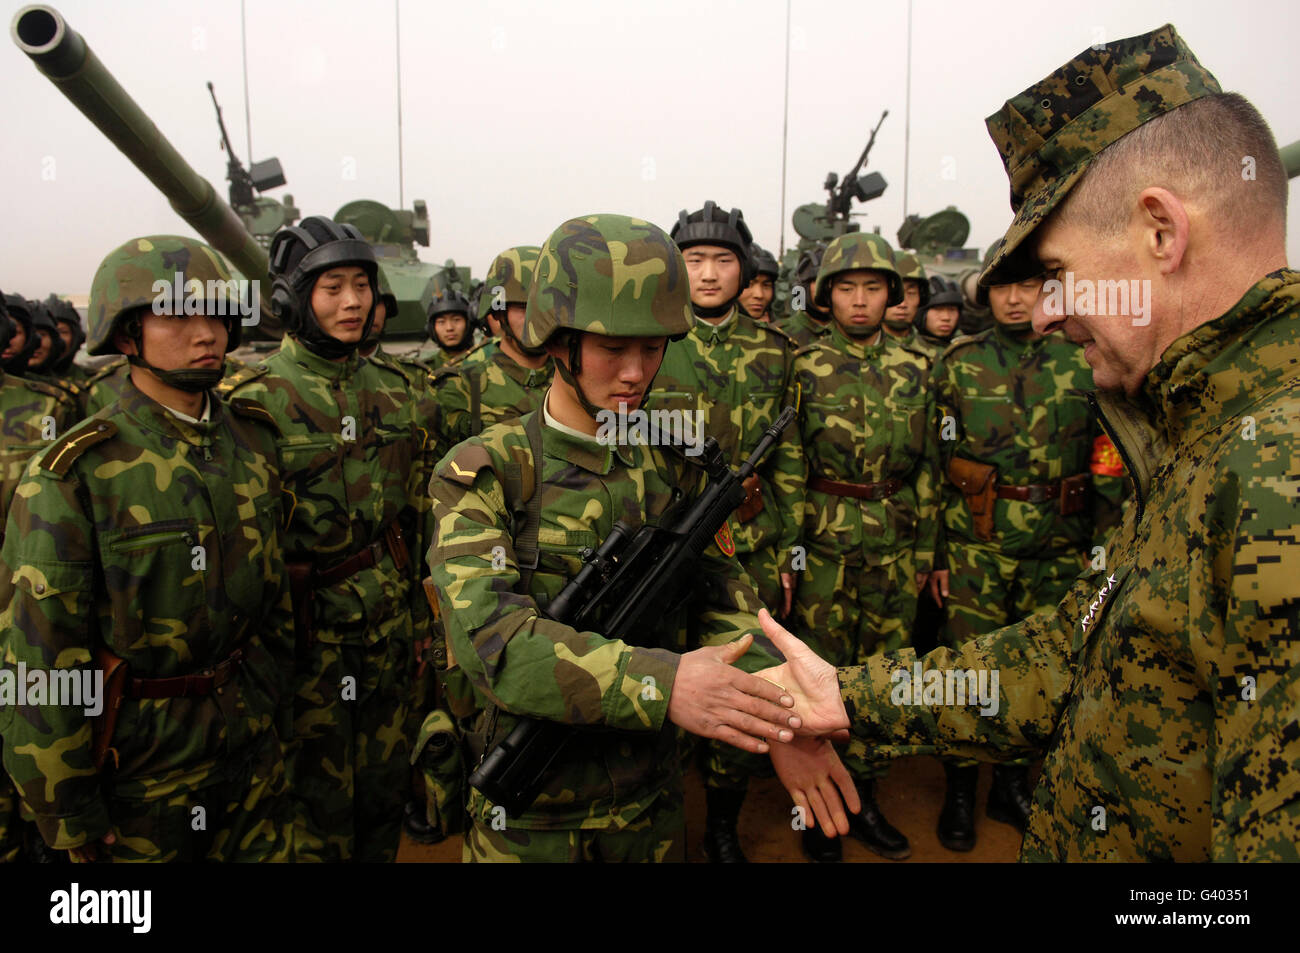 Chairman of the Joint Chiefs of Staff shakes hands with Chinese tanker soldier. - Stock Image